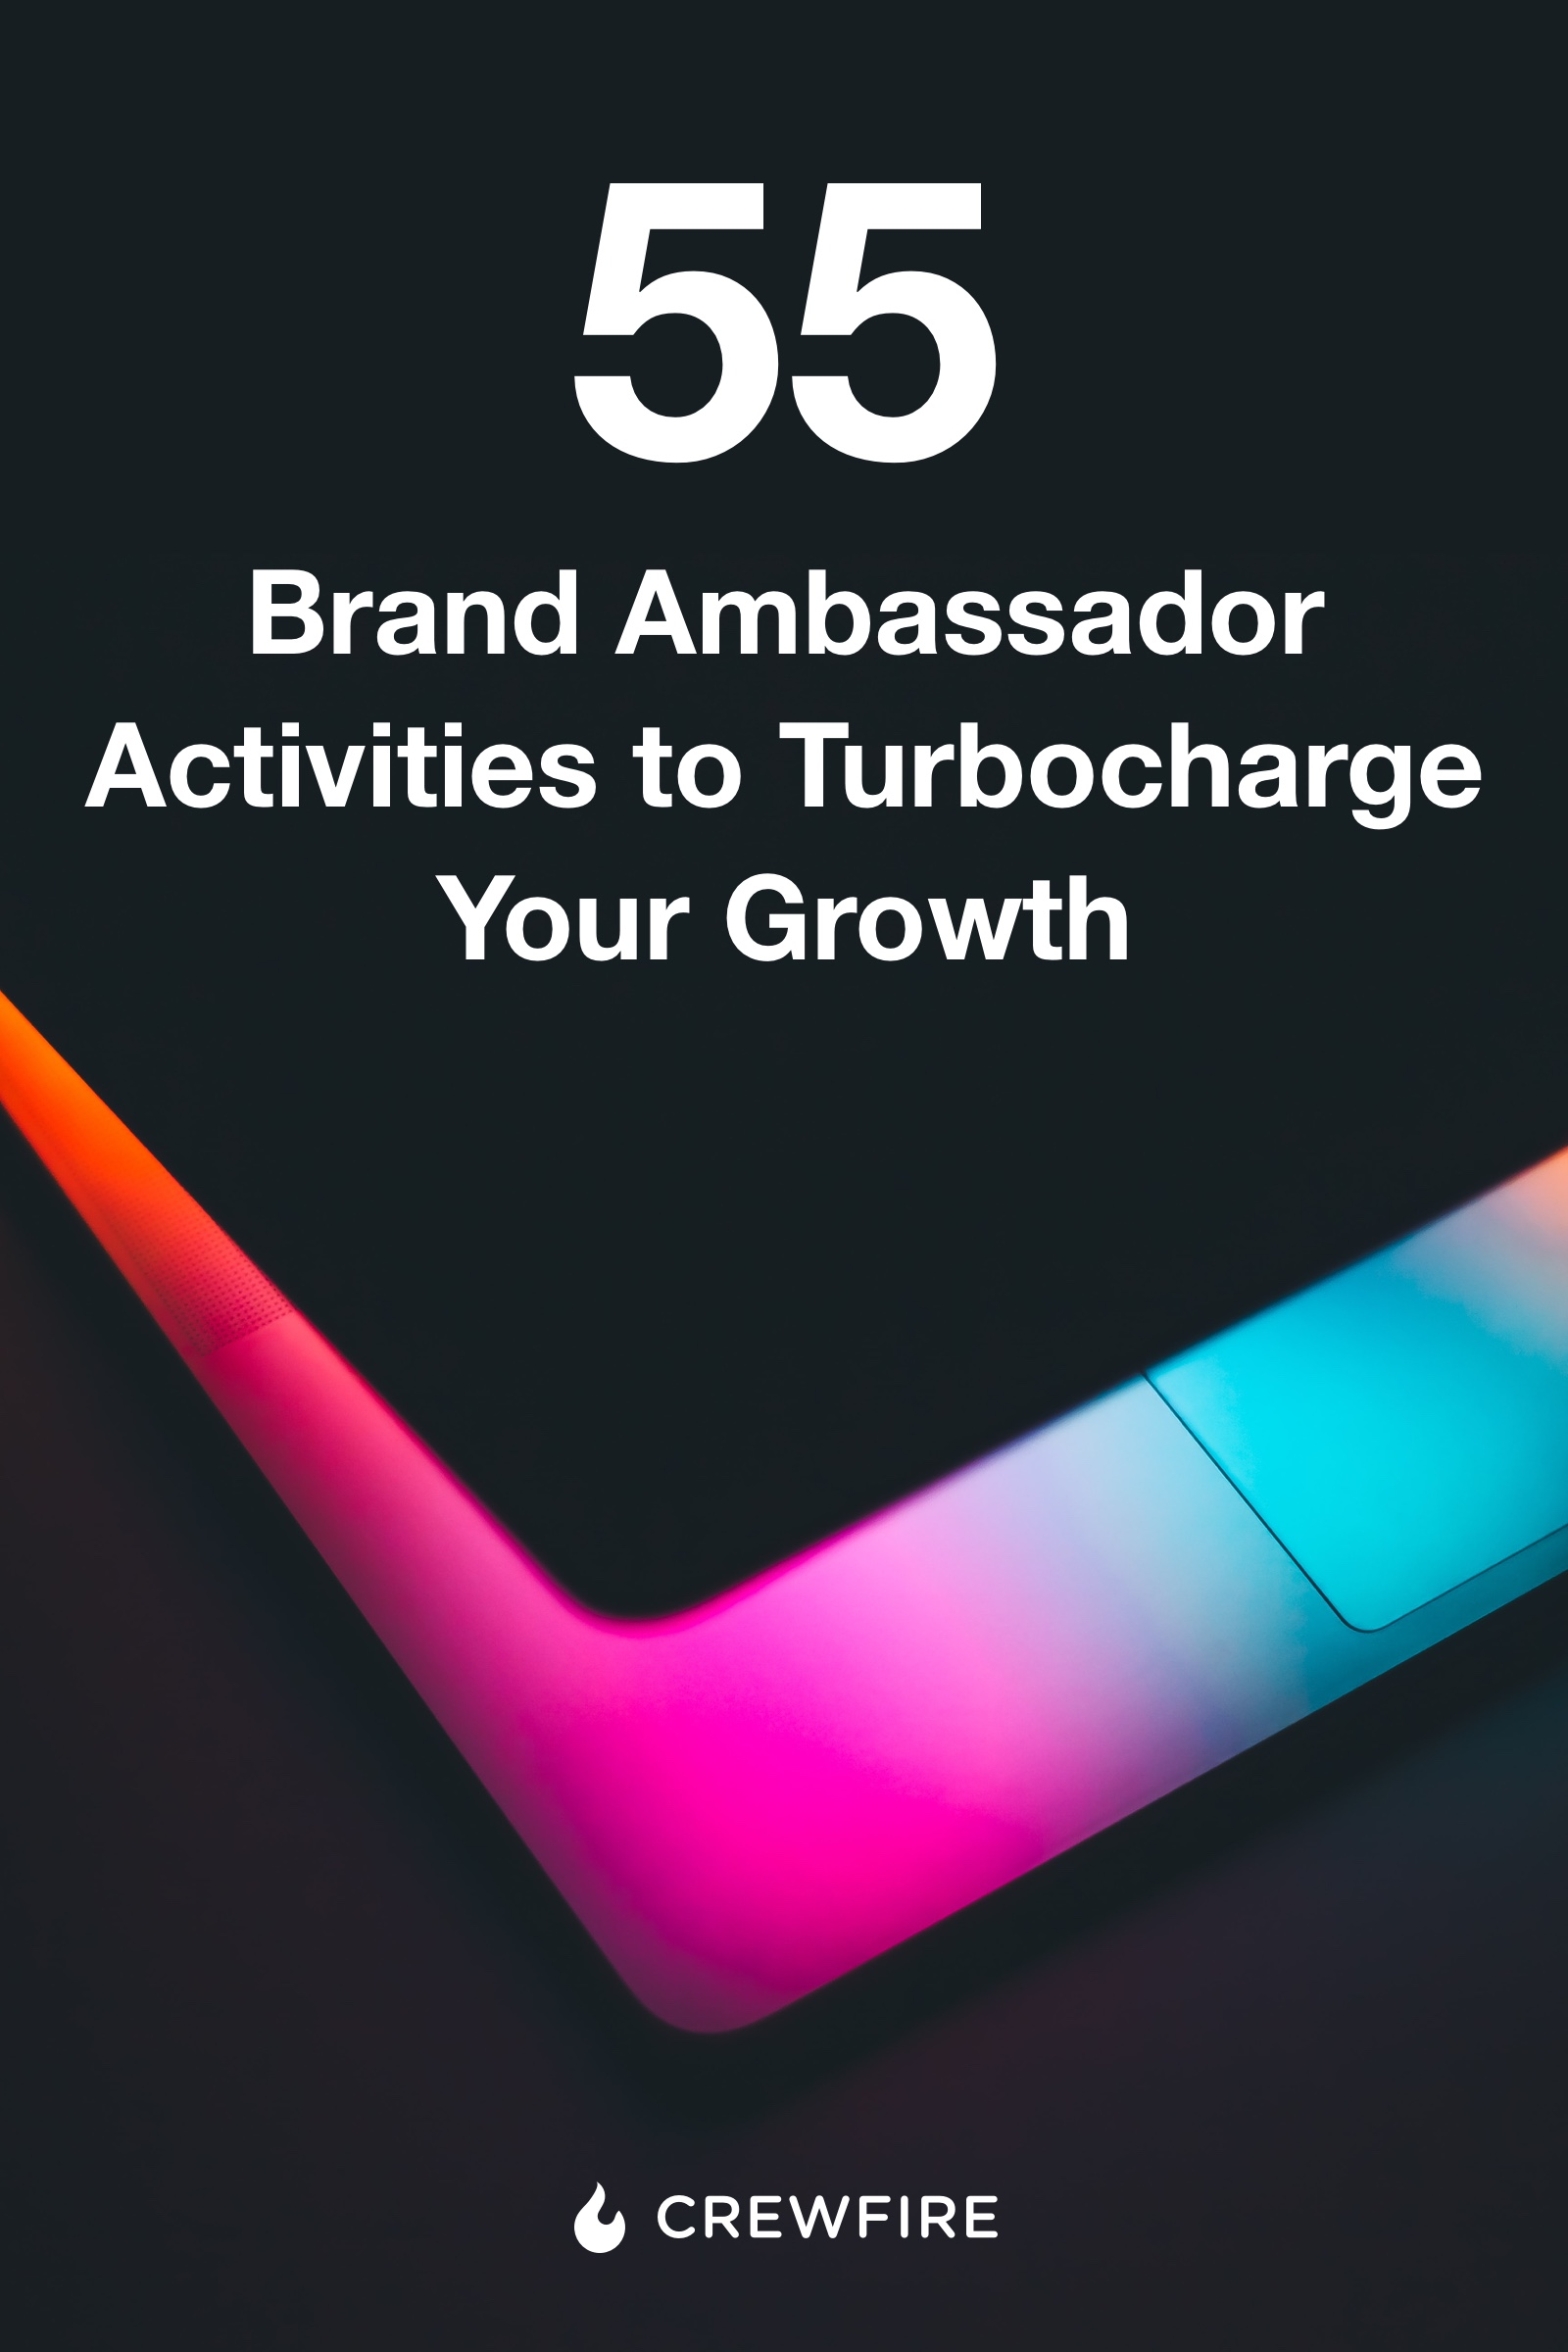 How To Mobilize Your Army of Brand Ambassadors